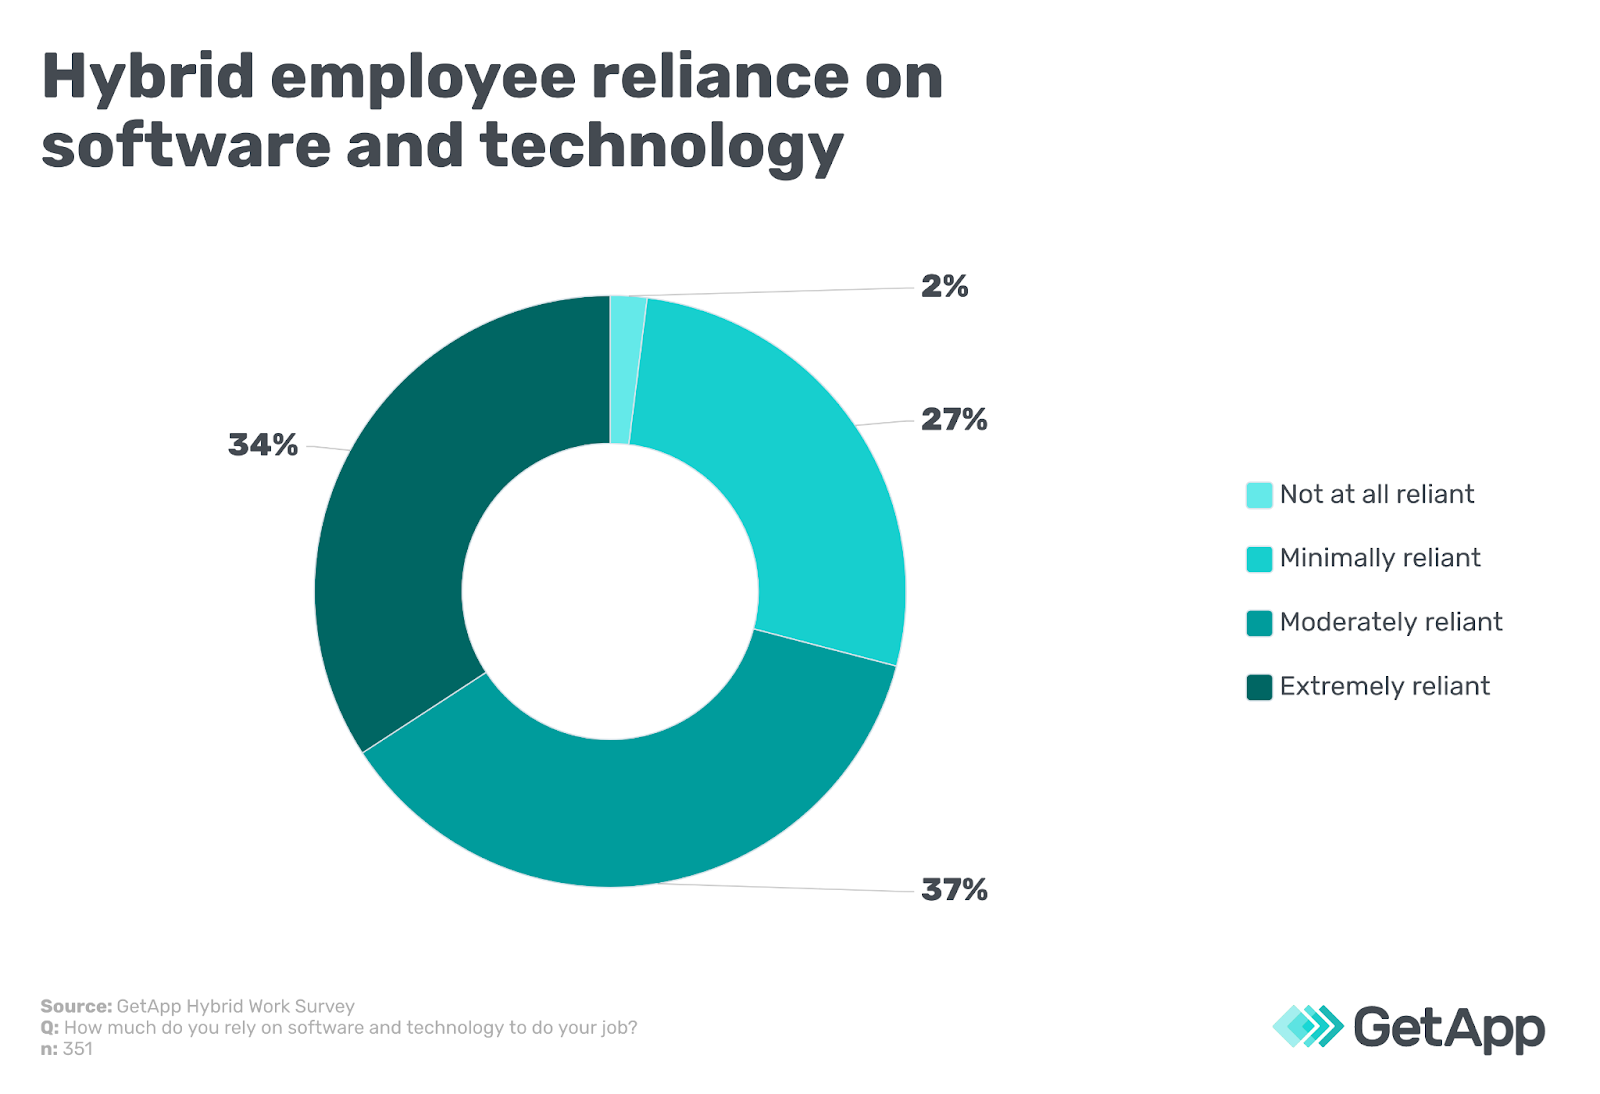 Hybrid employee reliance on software and technology